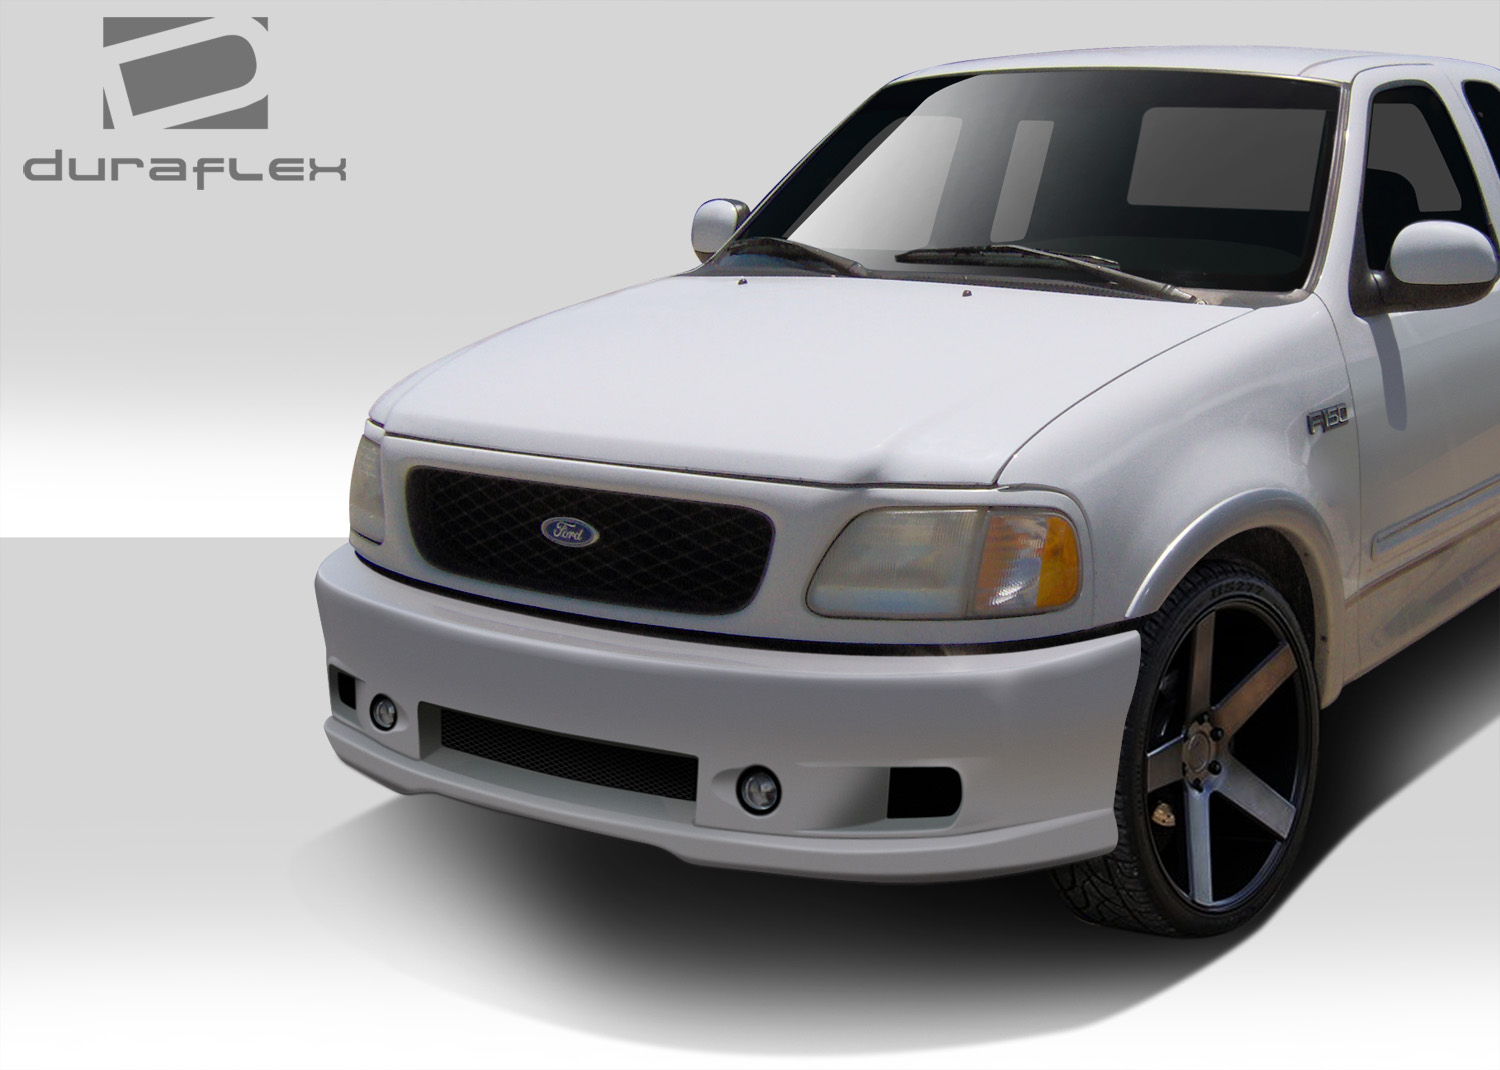 97-03 Ford F-150 / 97-02 Ford Expedition Duraflex BT-1 Front Bumper ...